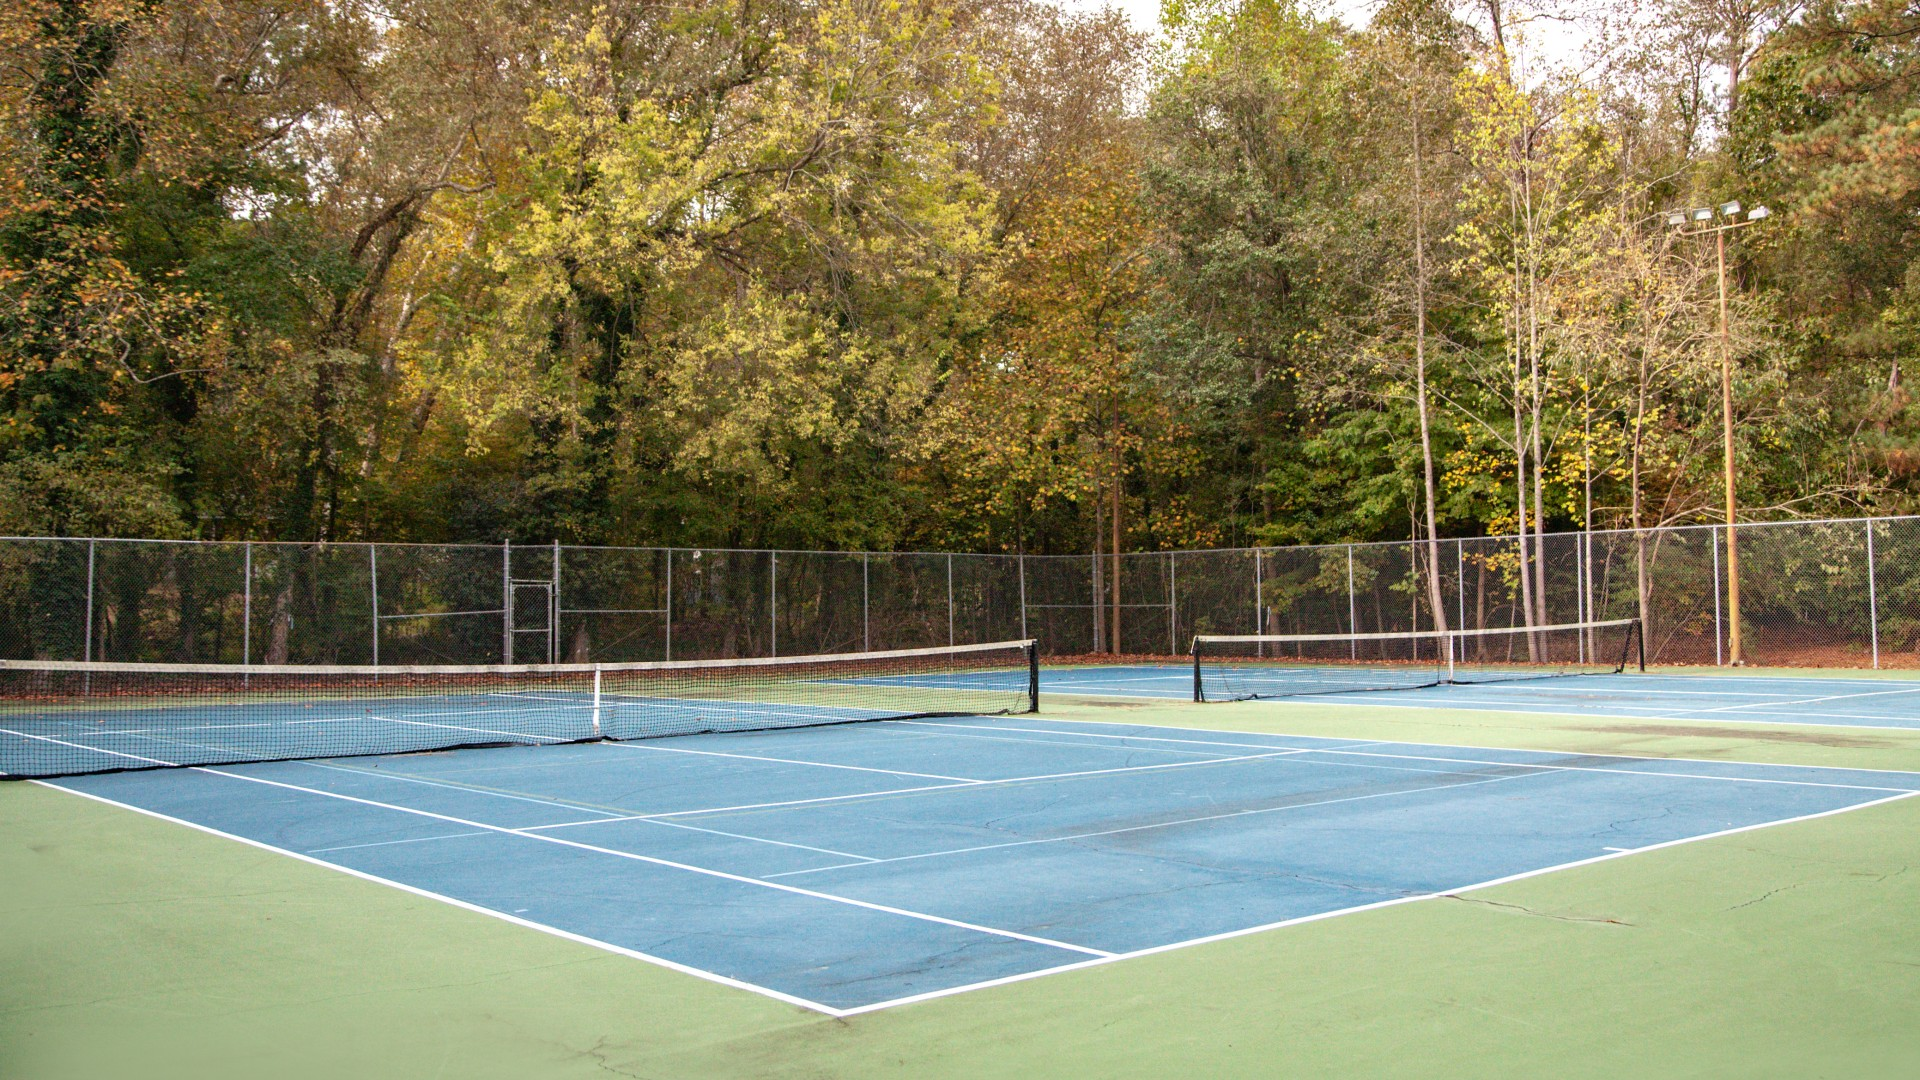 Two outdoor tennis courts at Brentwood Park